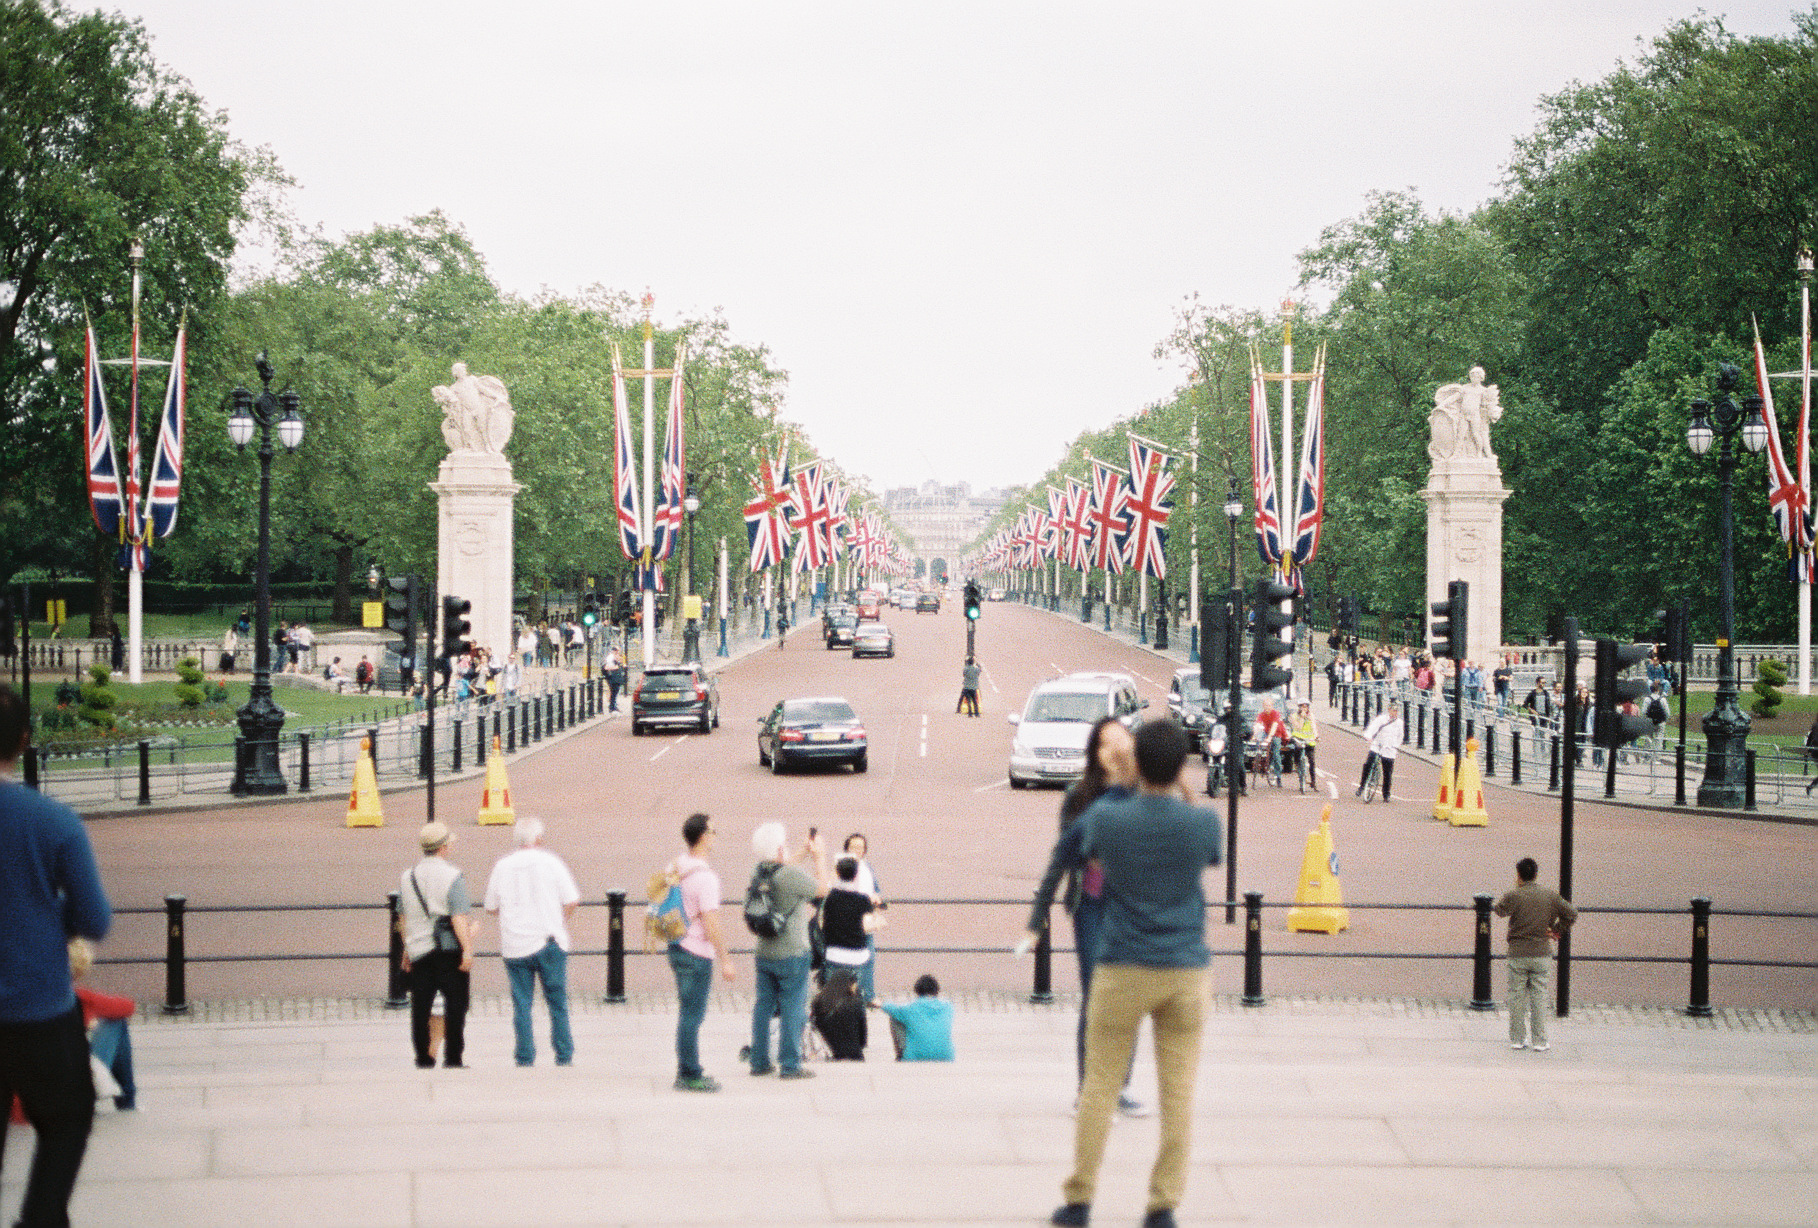 near-buckingham-palace-london-uk-european-honeymoon